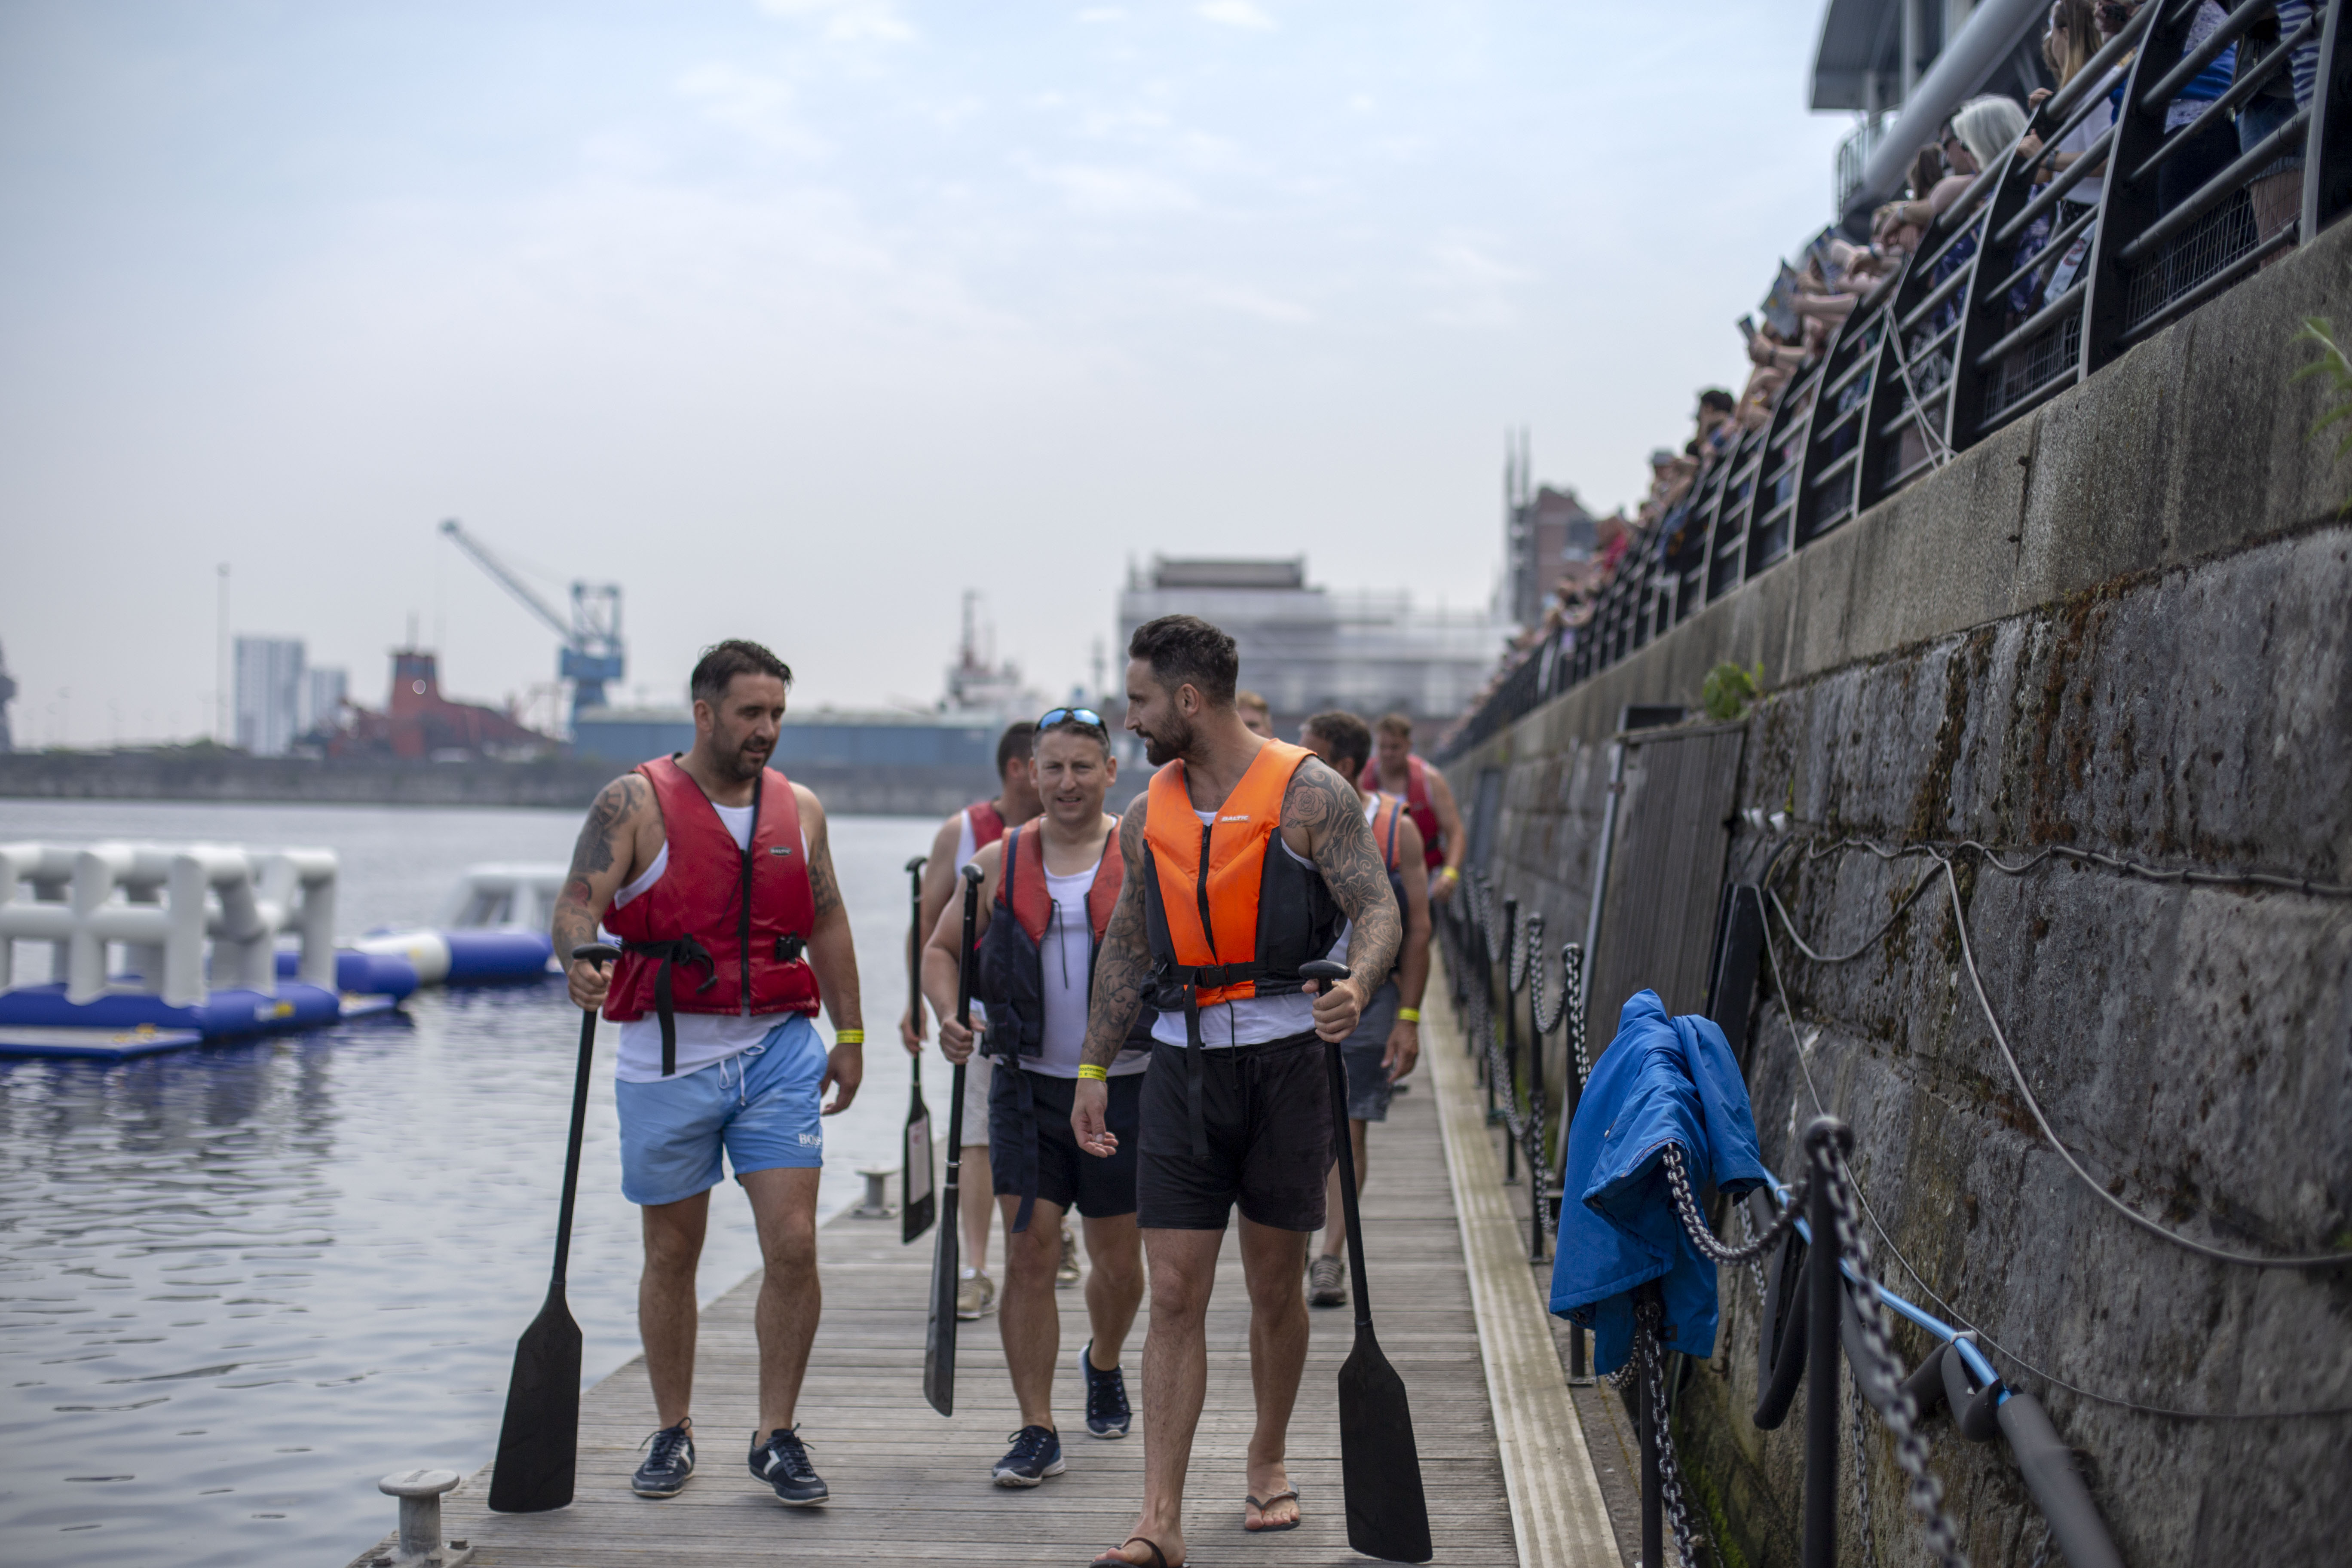 2018 Dragon Boat Challenge photos - 270518 6D 5318 Edited